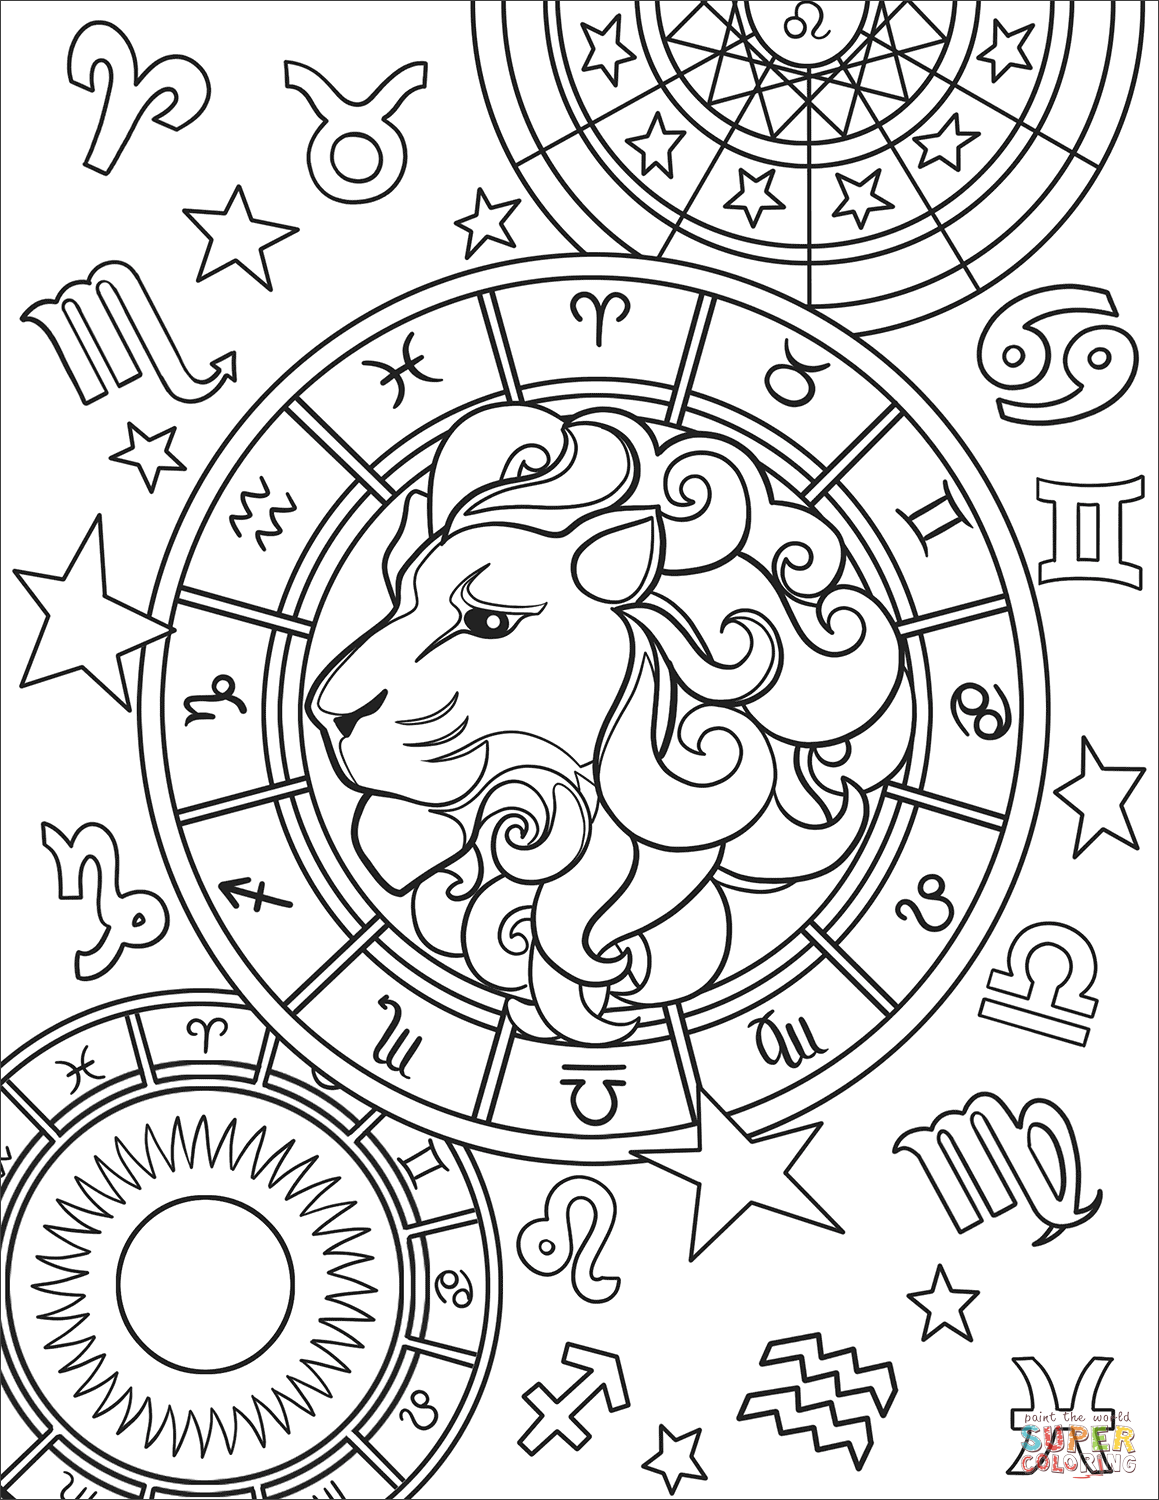 Leo Zodiac Sign Super Coloring Zodiac Signs Colors Free Printable Coloring Pages Printable Coloring Pages